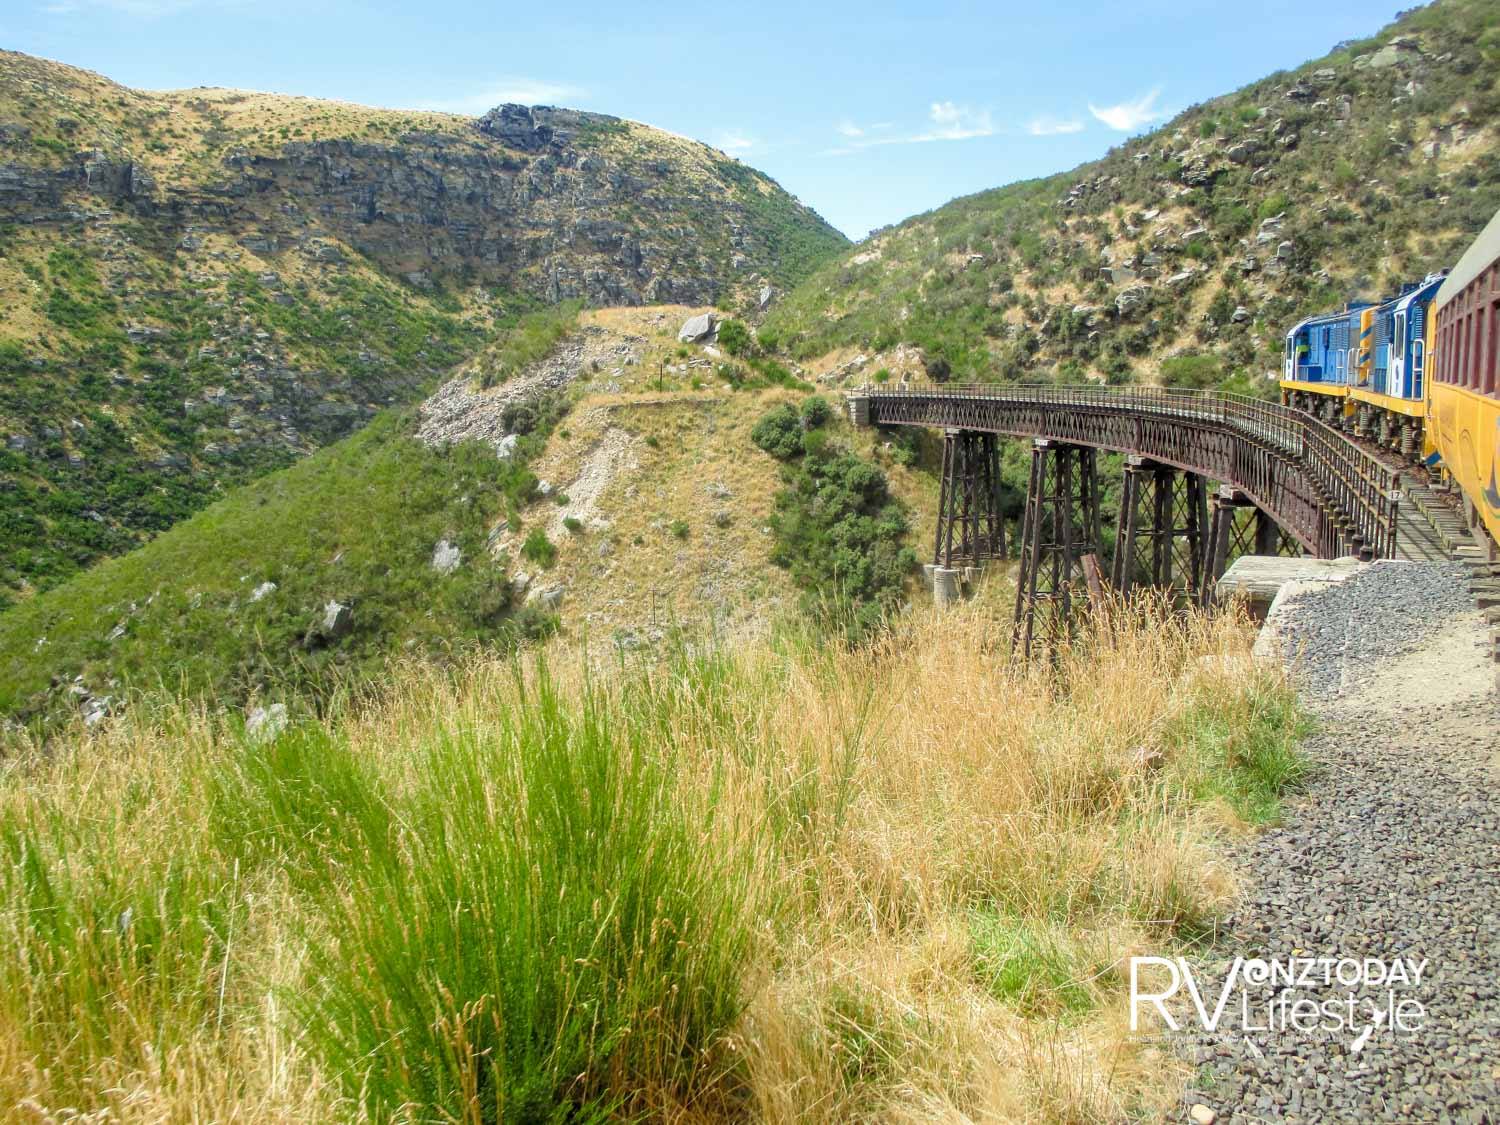 Taieri Gorge - crossing one of the very high trestle bridges